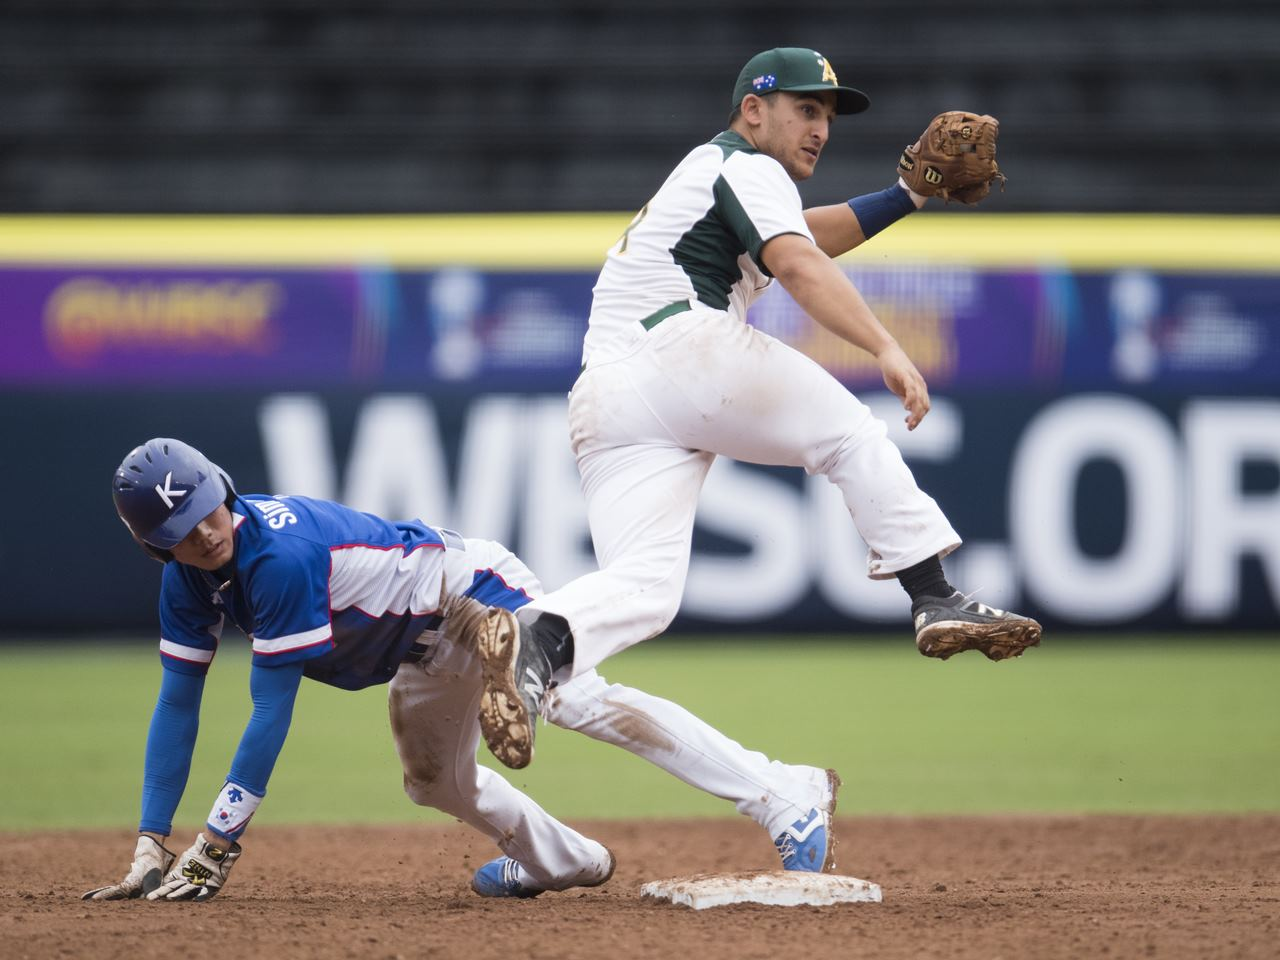 World No. 13 Australia tops No. 3 Korea in Super Round of U-23 Baseball World Cup